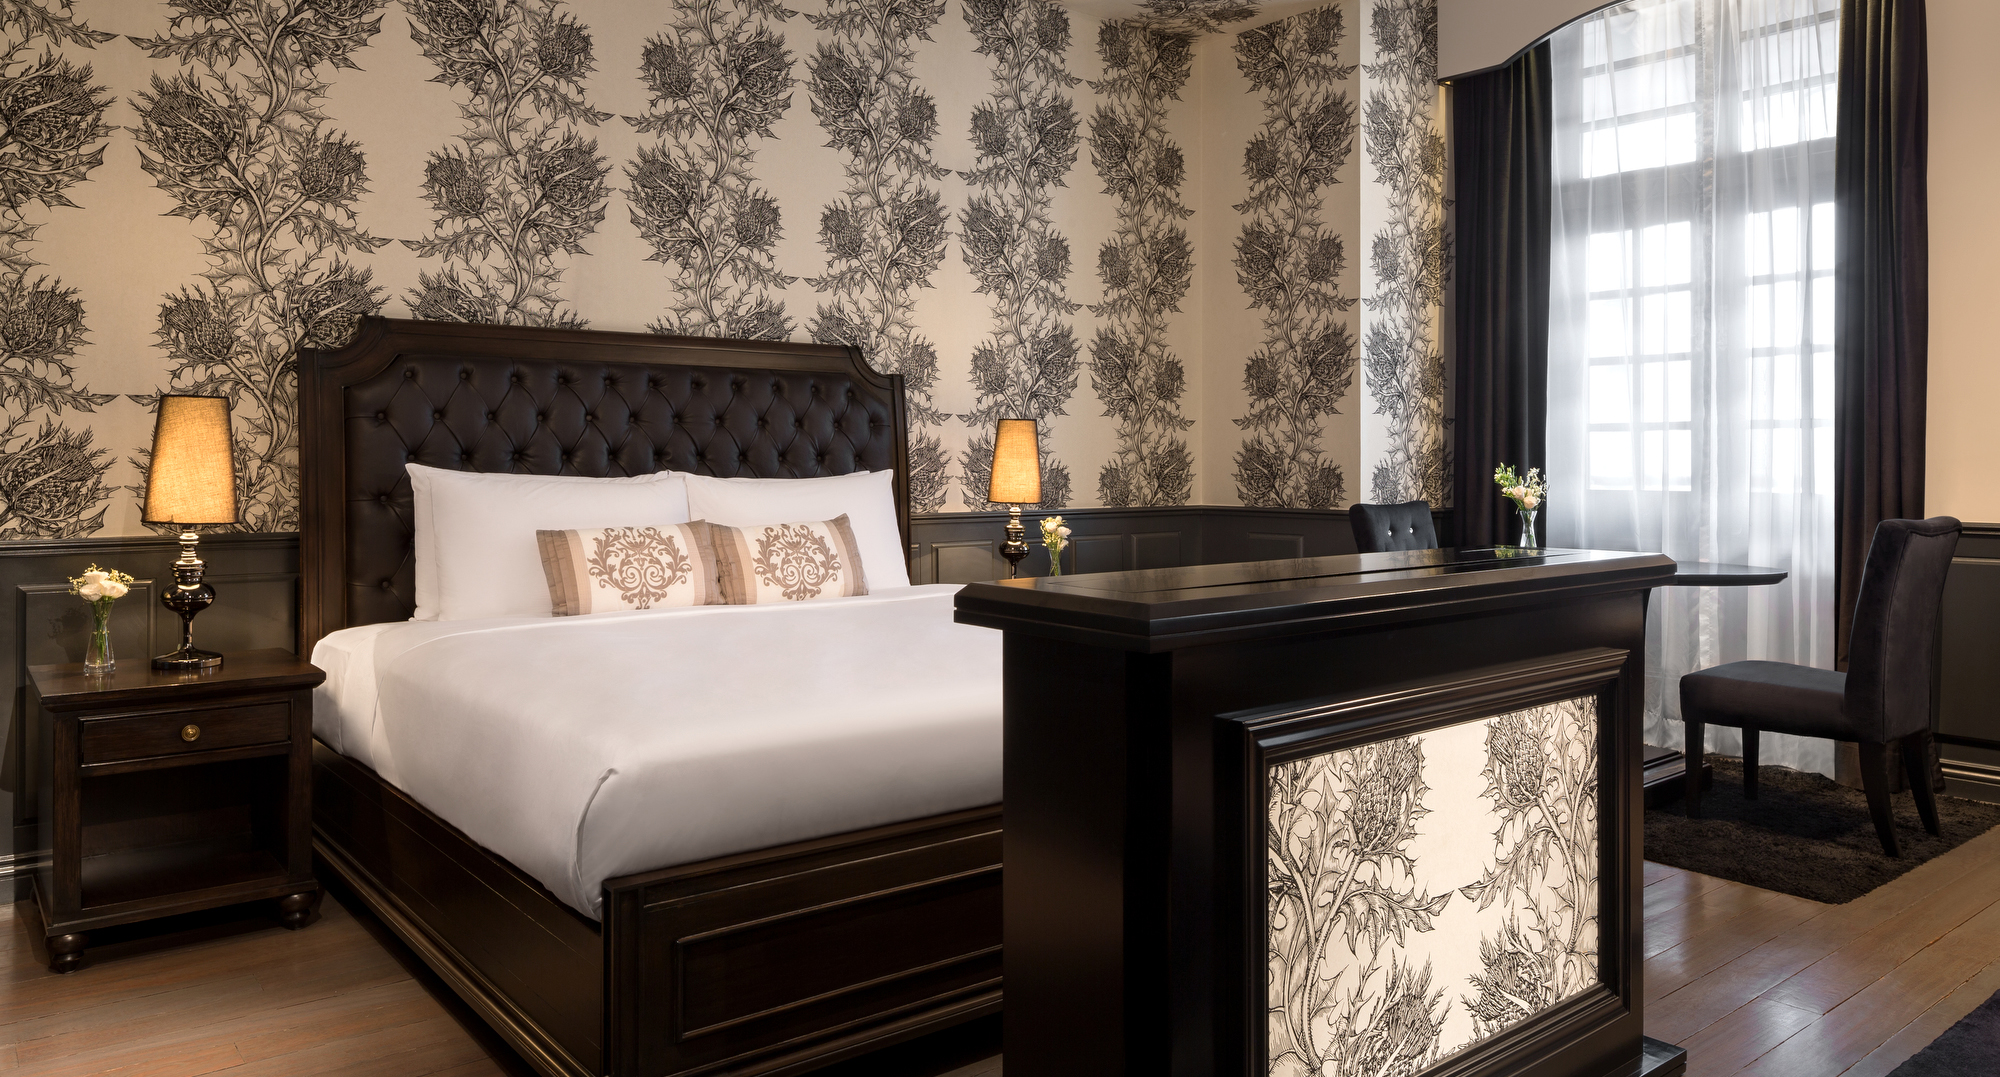 The Most Luxurious Hotel Suites In Hong Kong, by AD Luxury Center Tables Luxury Center Tables You Need To Add To Your Home Décor Hullett House Hotel Suites Luxury Center Tables Luxury Center Tables You Need To Add To Your Home Décor Hullett House Hotel Suites